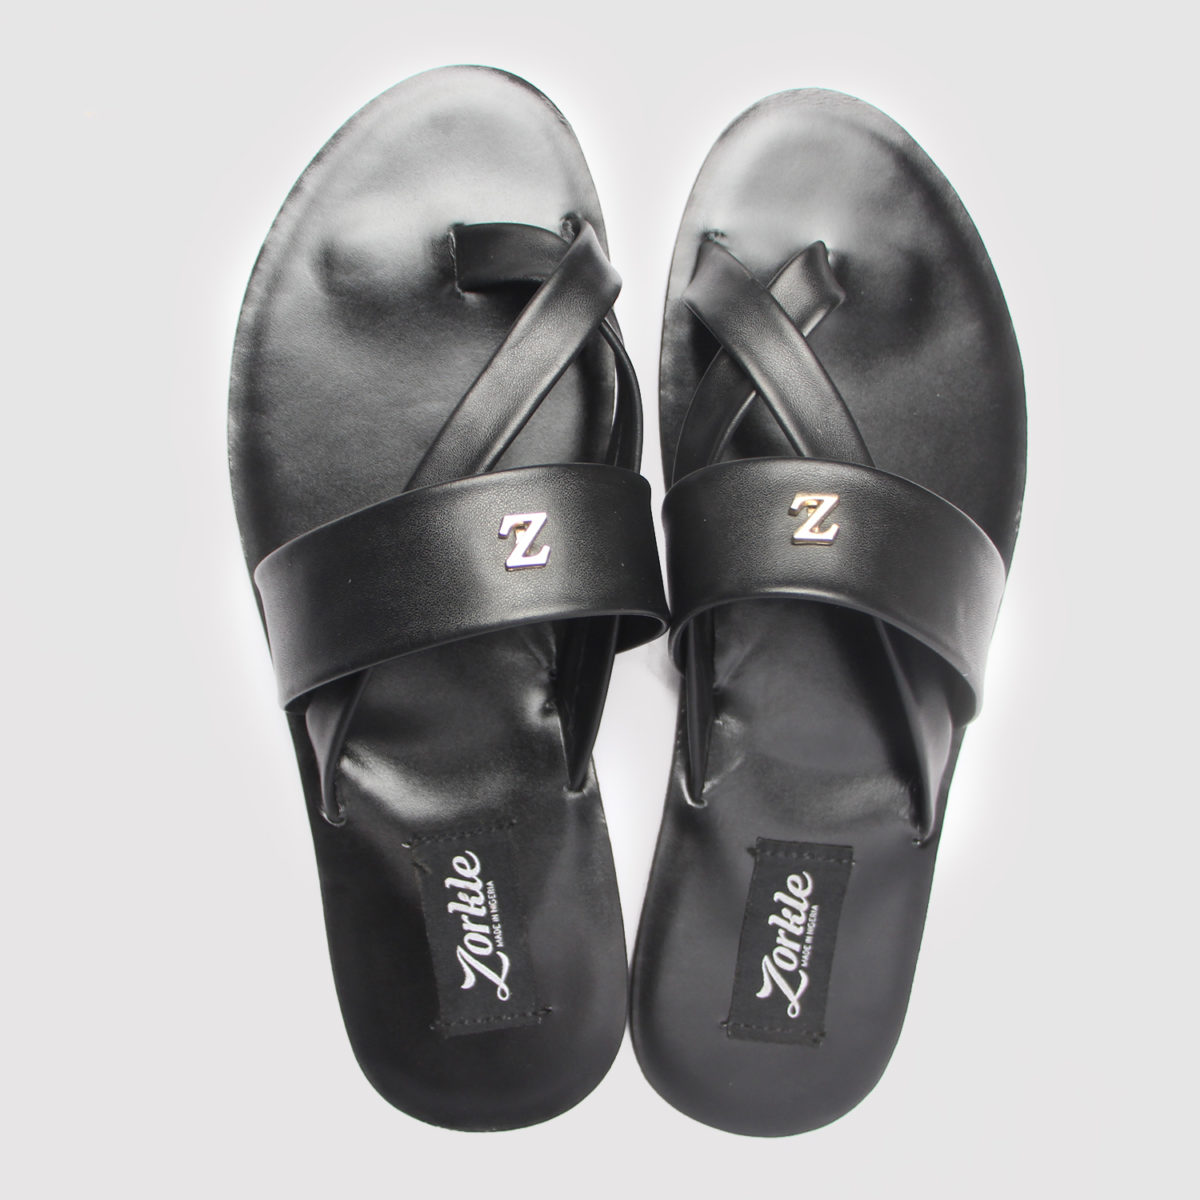 Volt Zedo Slippers Black Leather ZMP078 - Zorkles Shoes